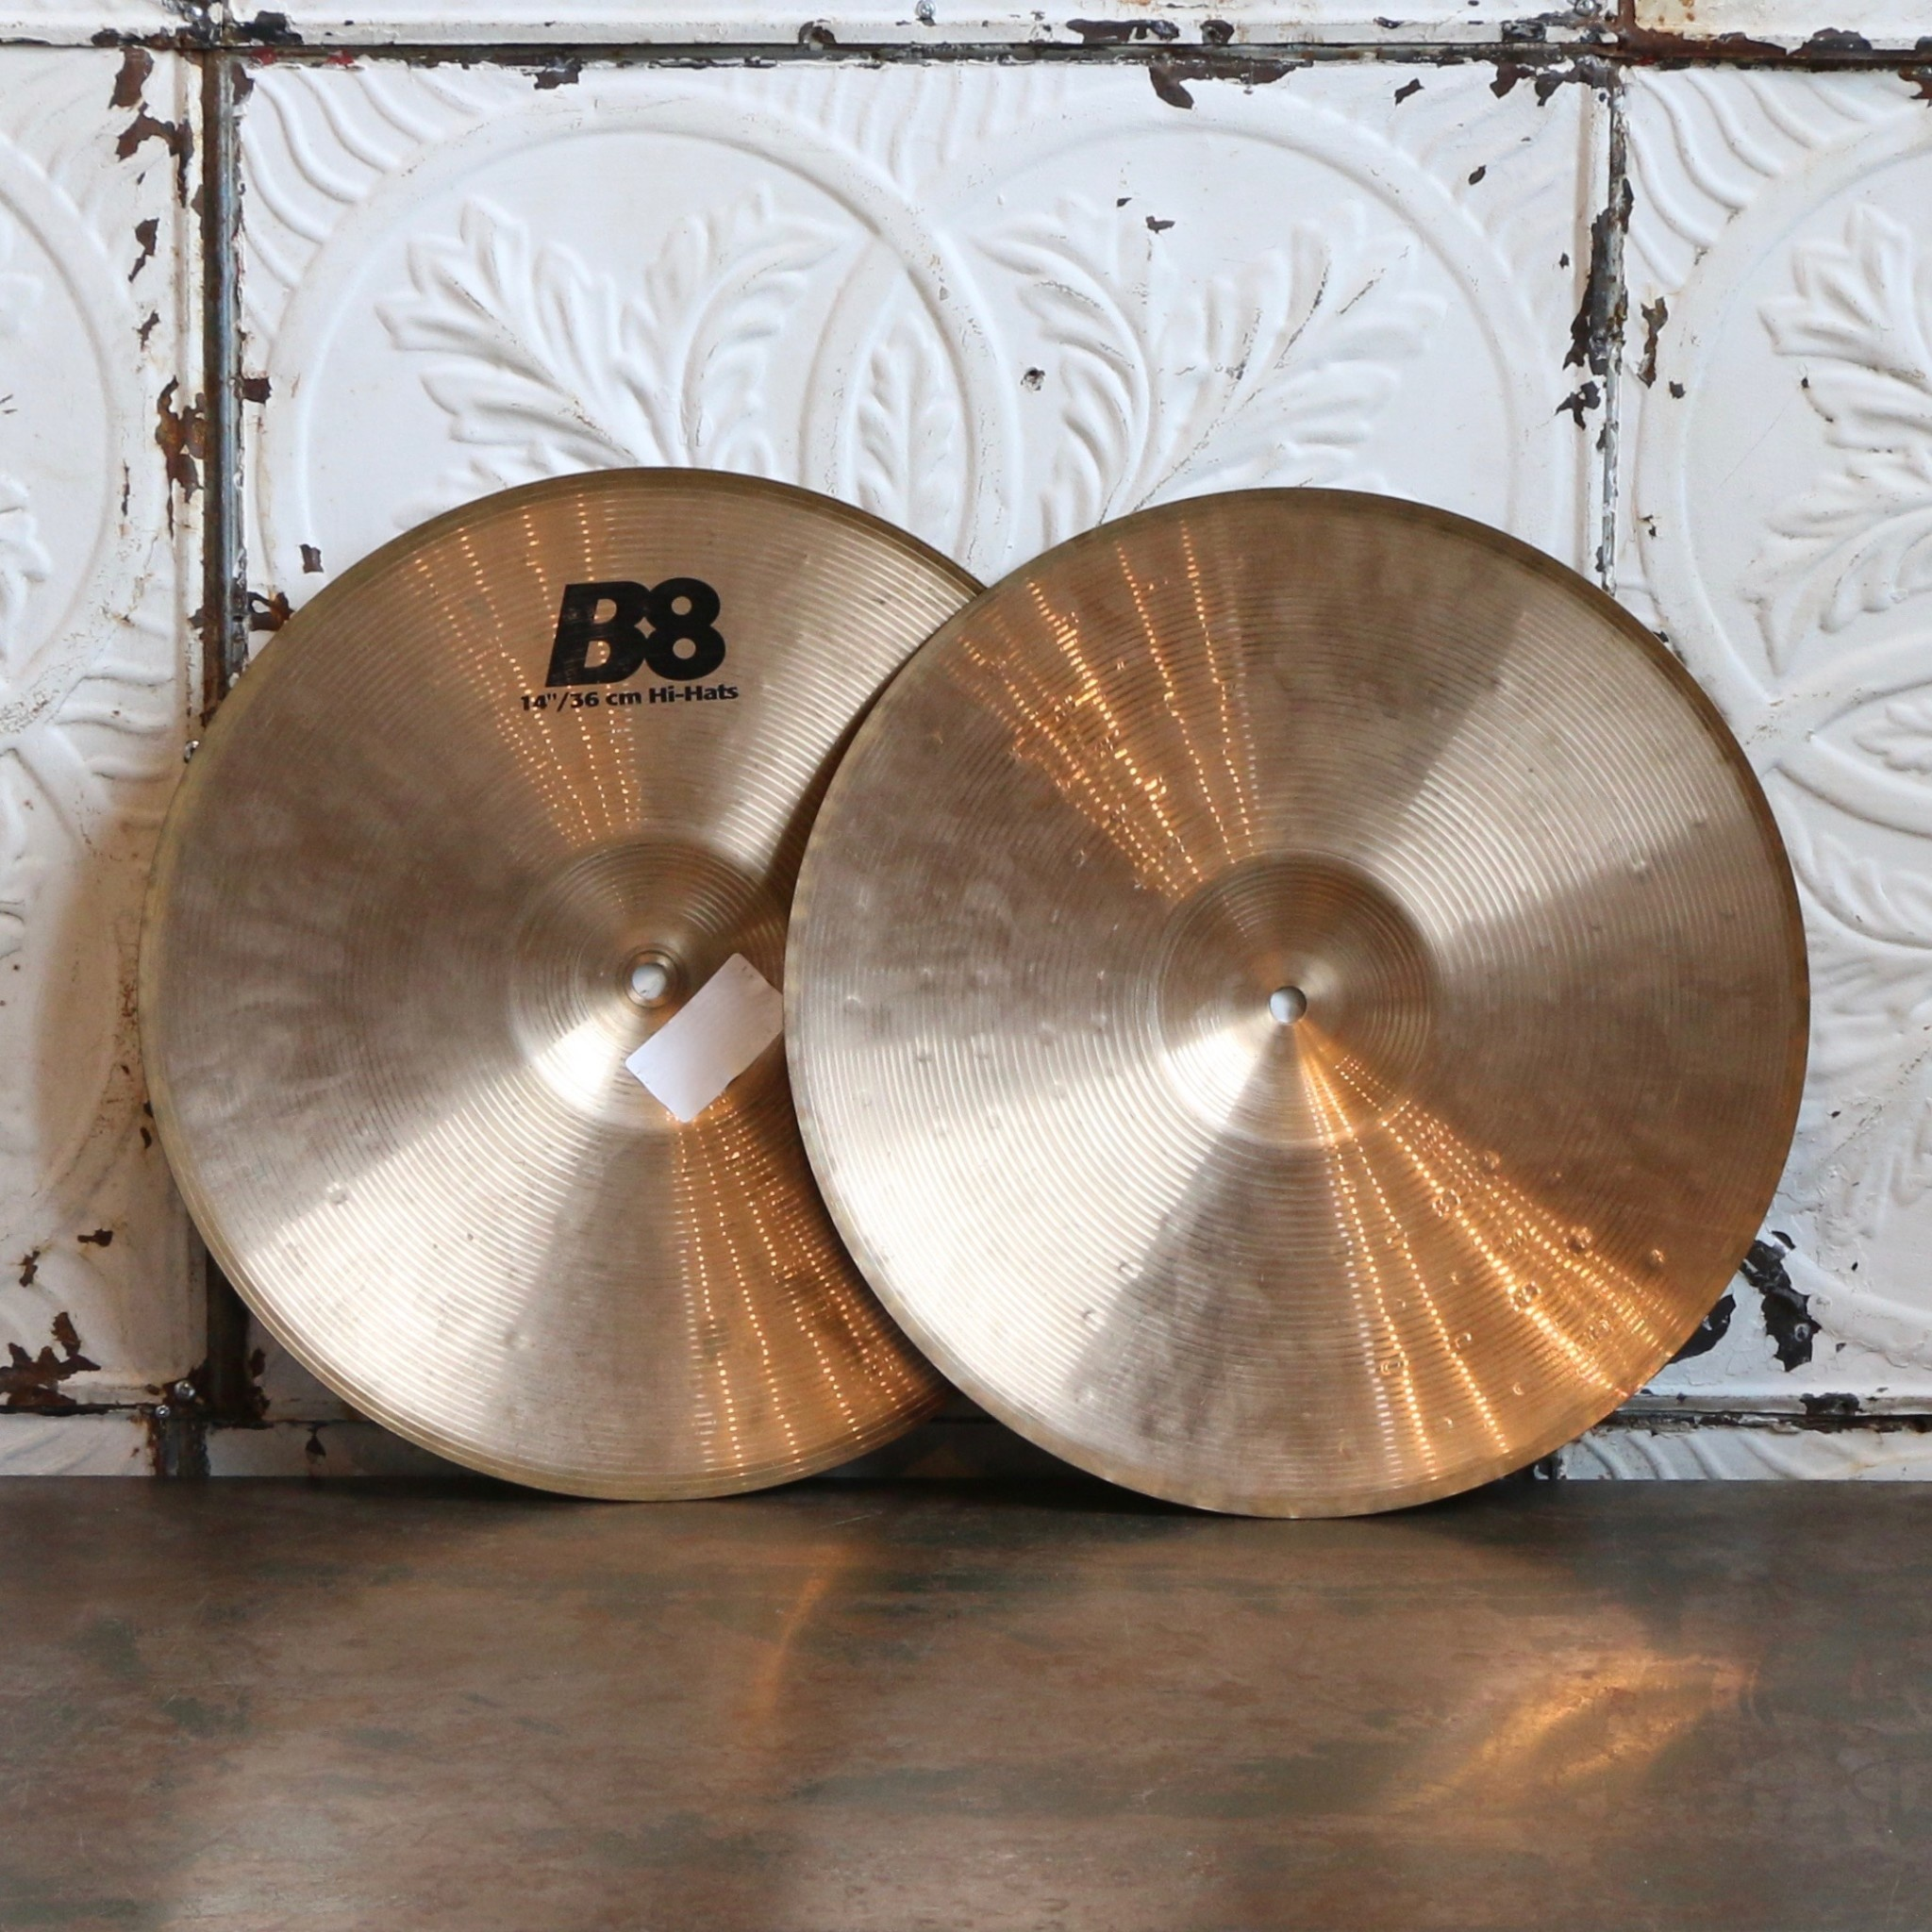 Sabian Used Sabian B8 Hi-hat Cymbals 14in